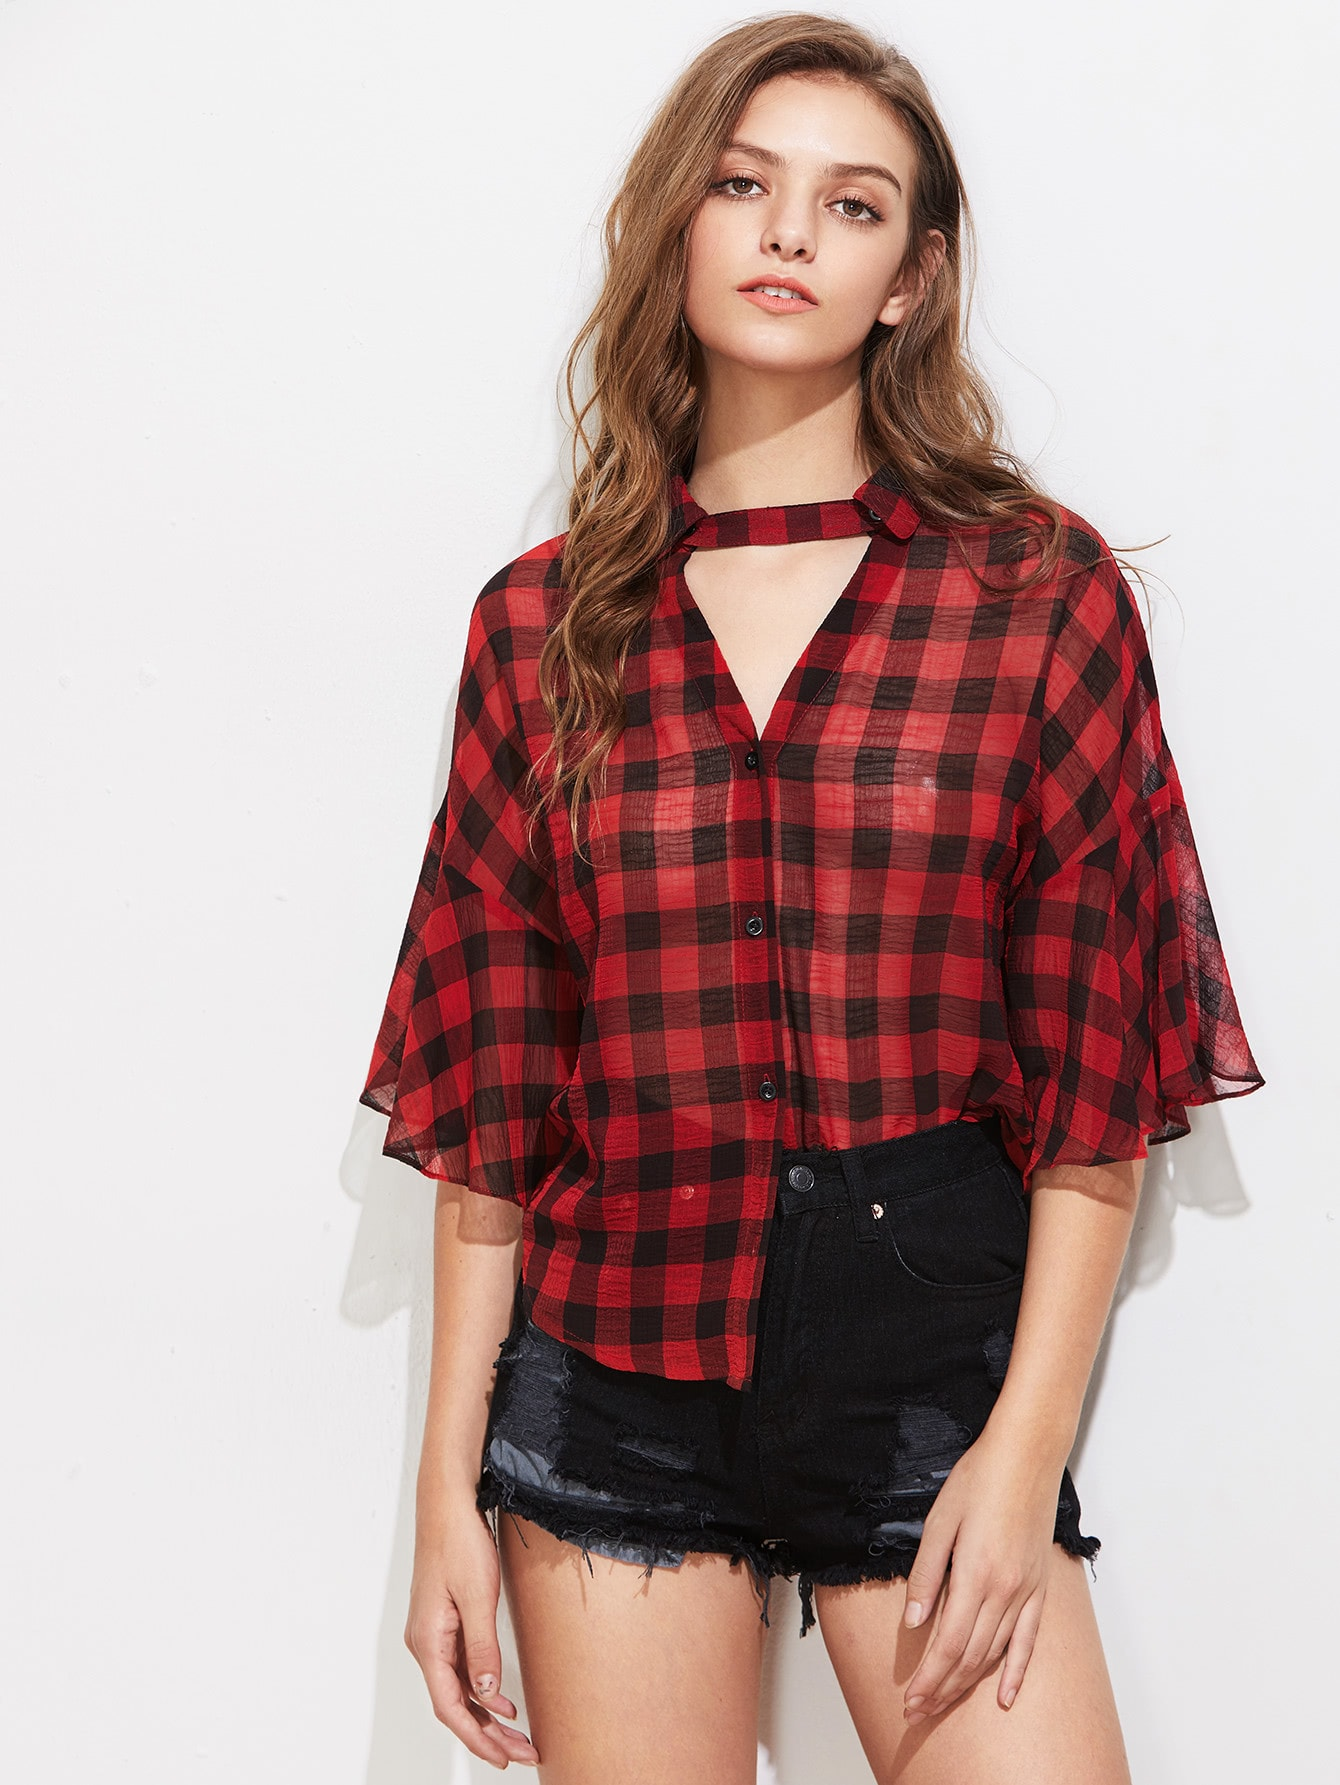 Choker Neck Fluted Sleeve Checkered Blouse blouse170609706